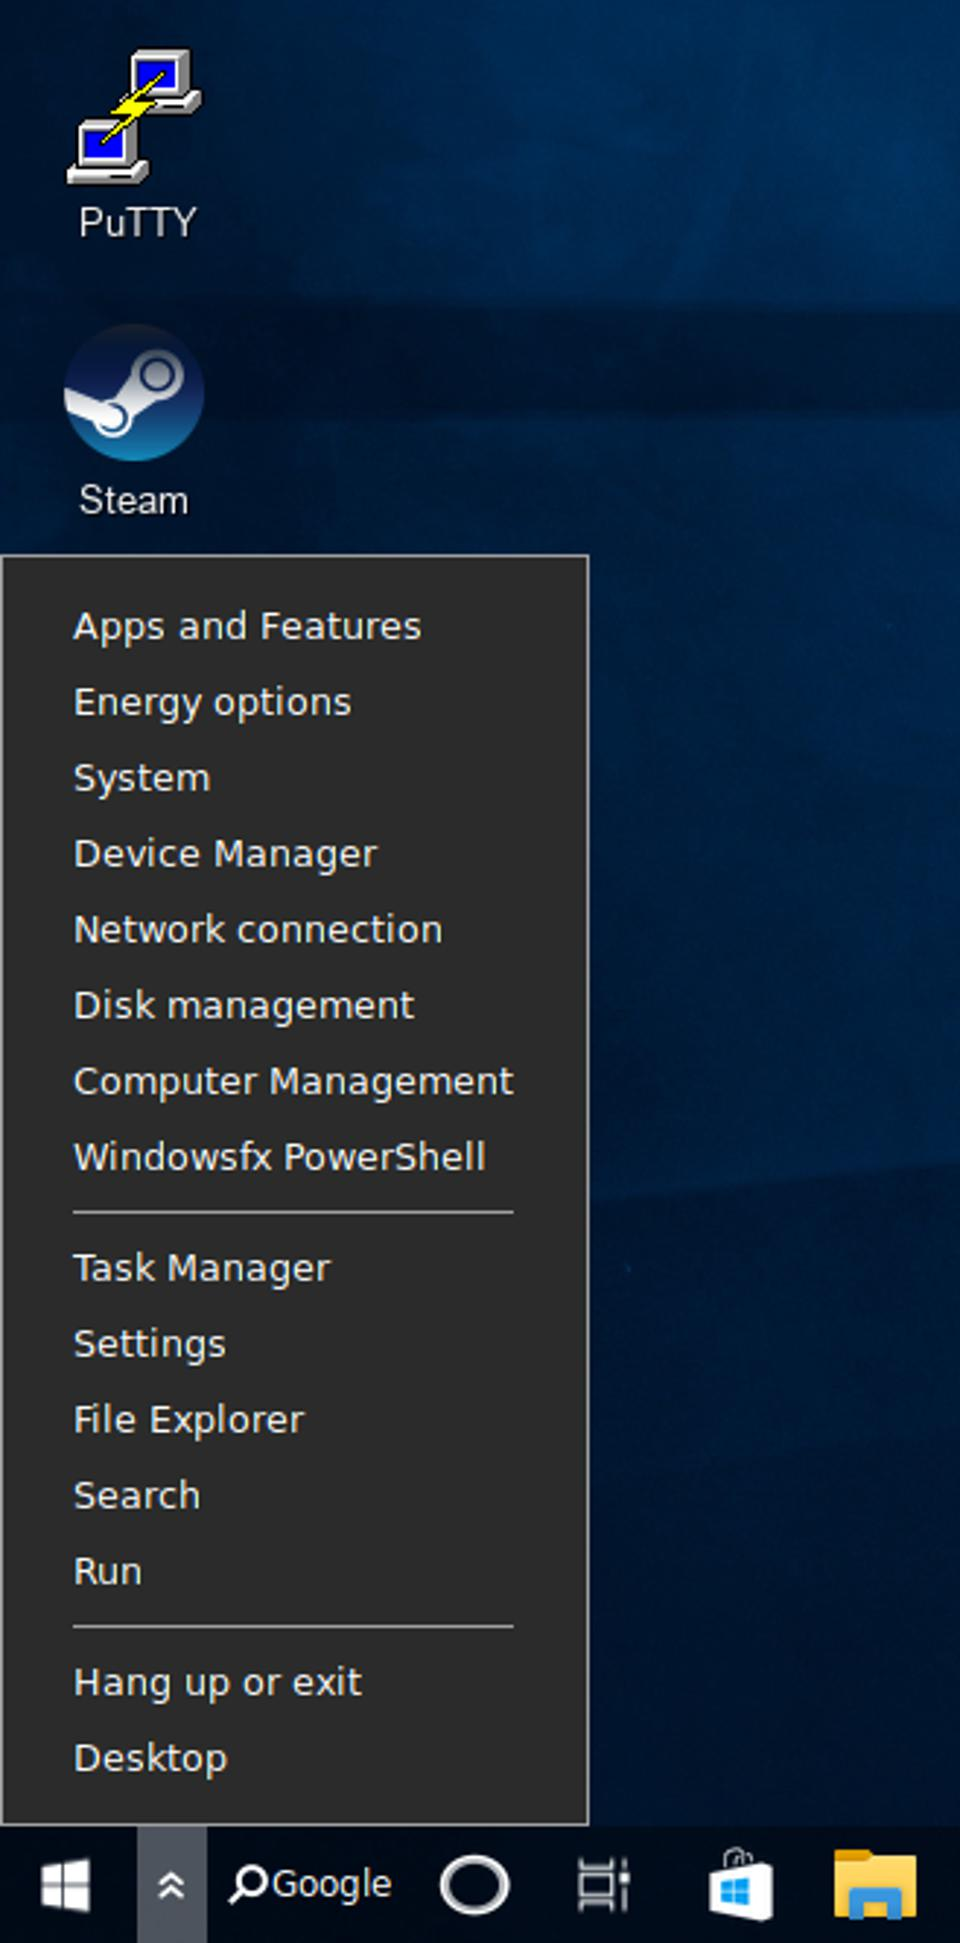 Familiar names and functionality, but the apps behind the menu are obviously Linux ones.